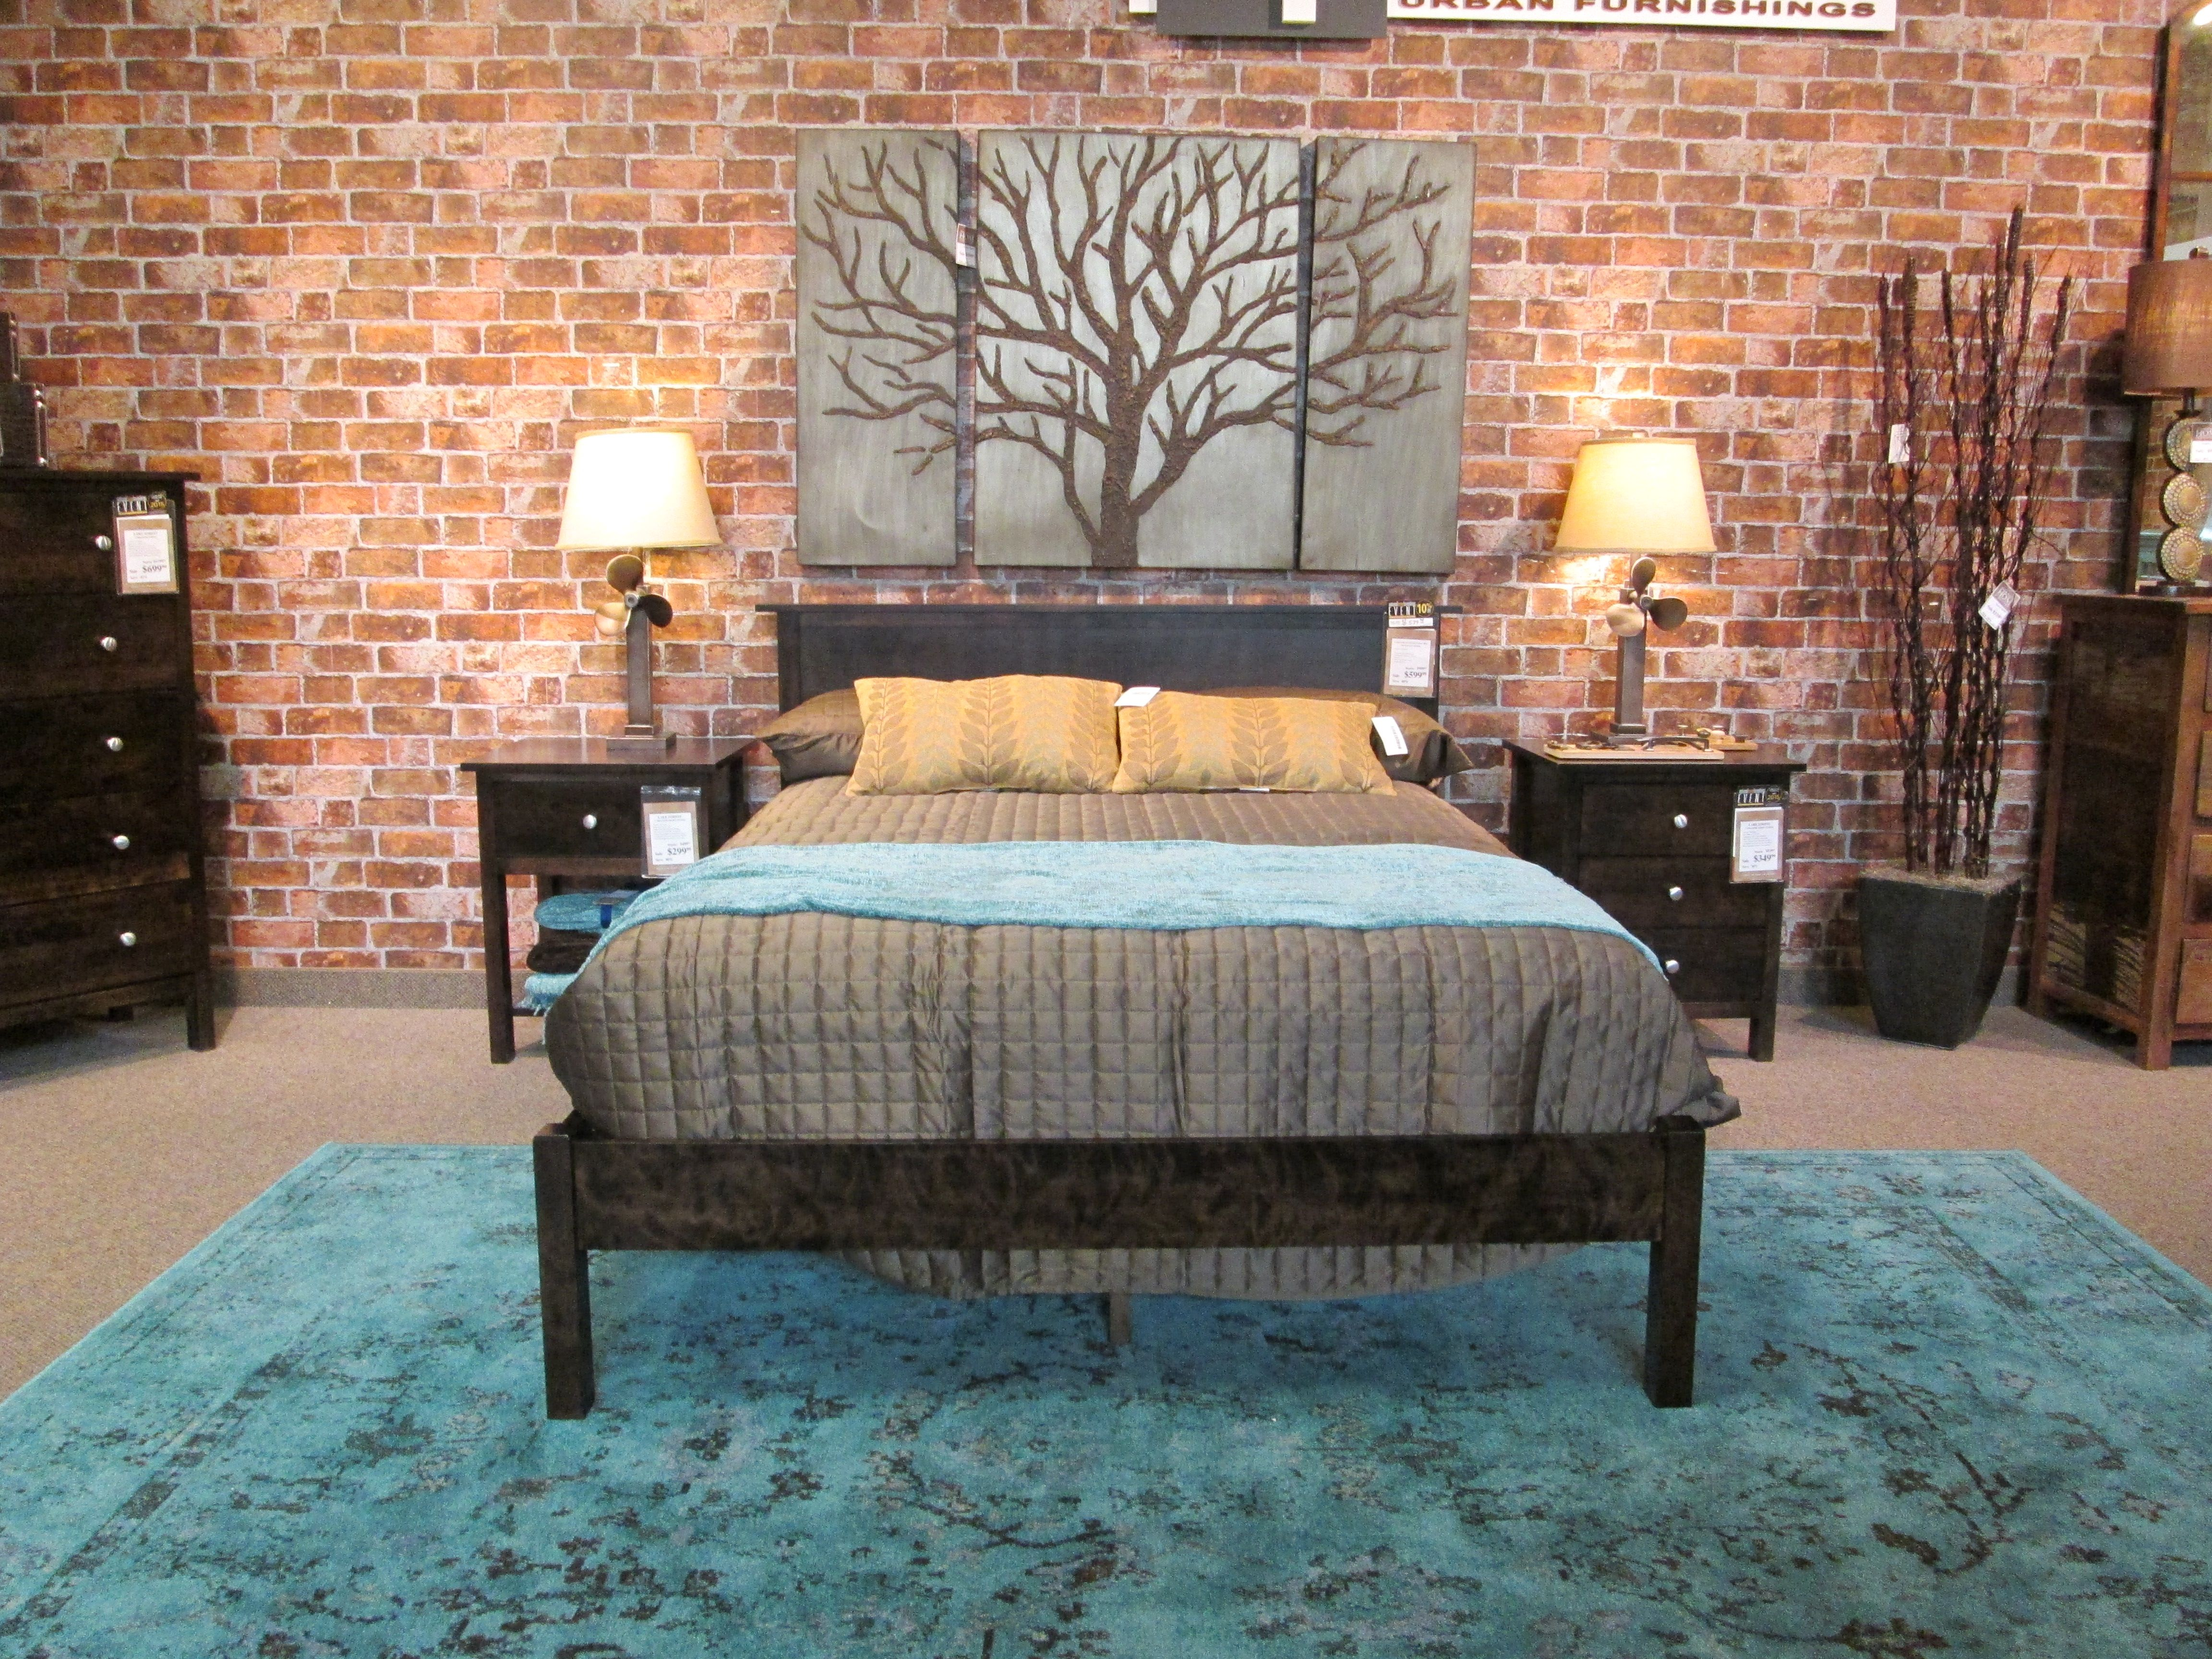 Photo from the HOM Furniture Woodbury Uptown Department Uptown